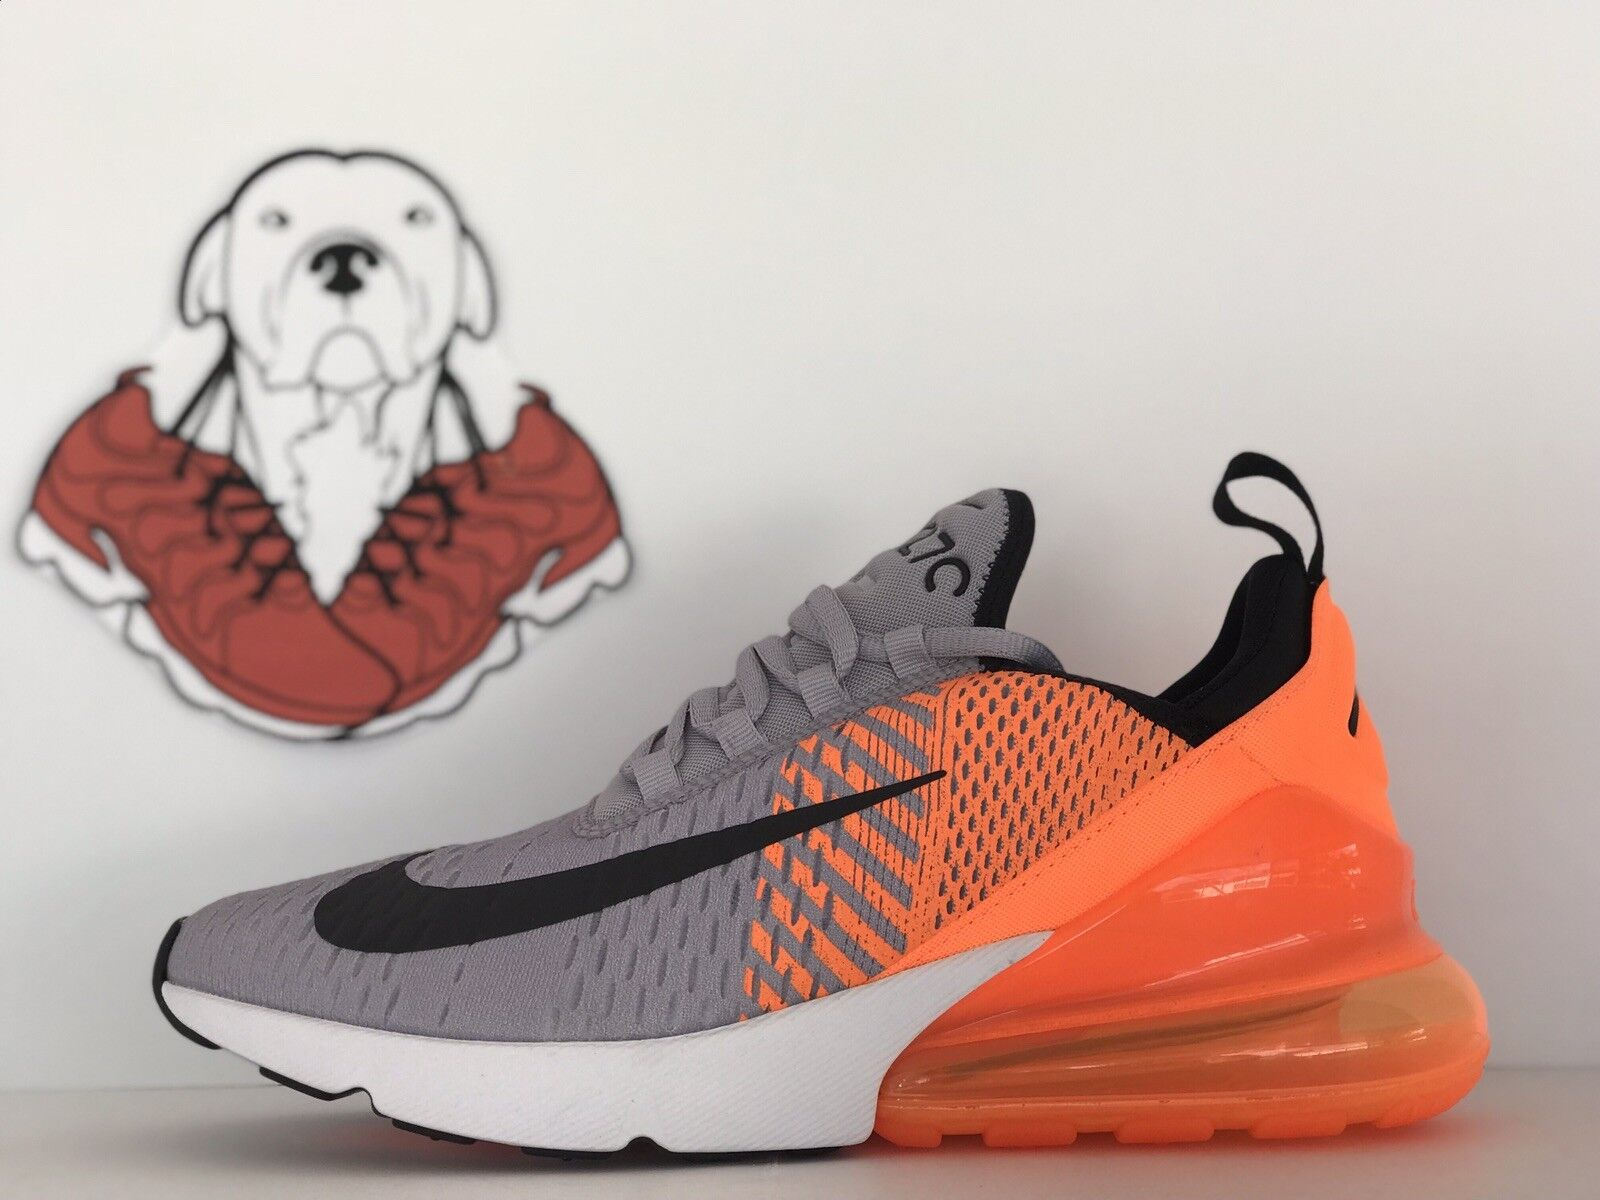 NIKE AIR MAX 270 ID orange-PURE PLATINUM-GREY-BLACK-WHITE SZ. 7.5 (AT7467-993)